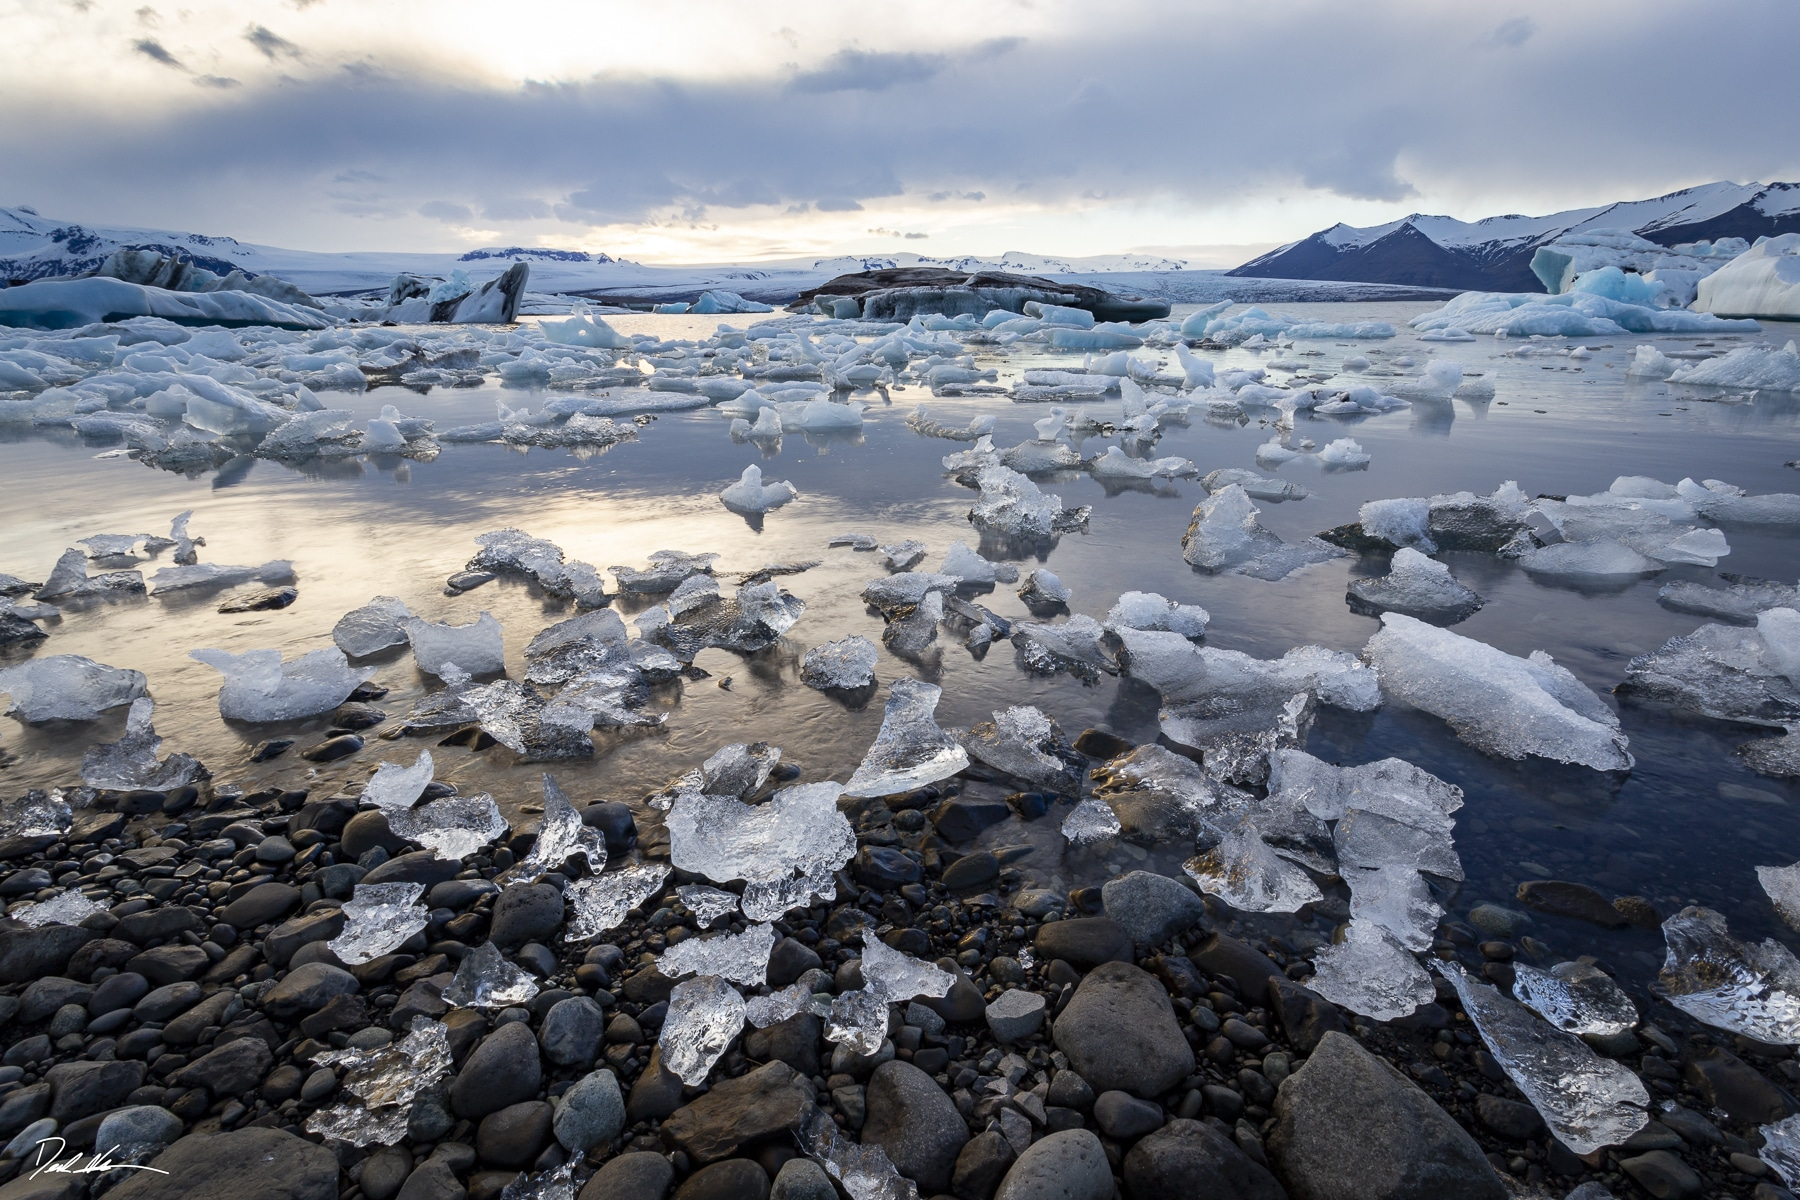 Icy beach in Iceland